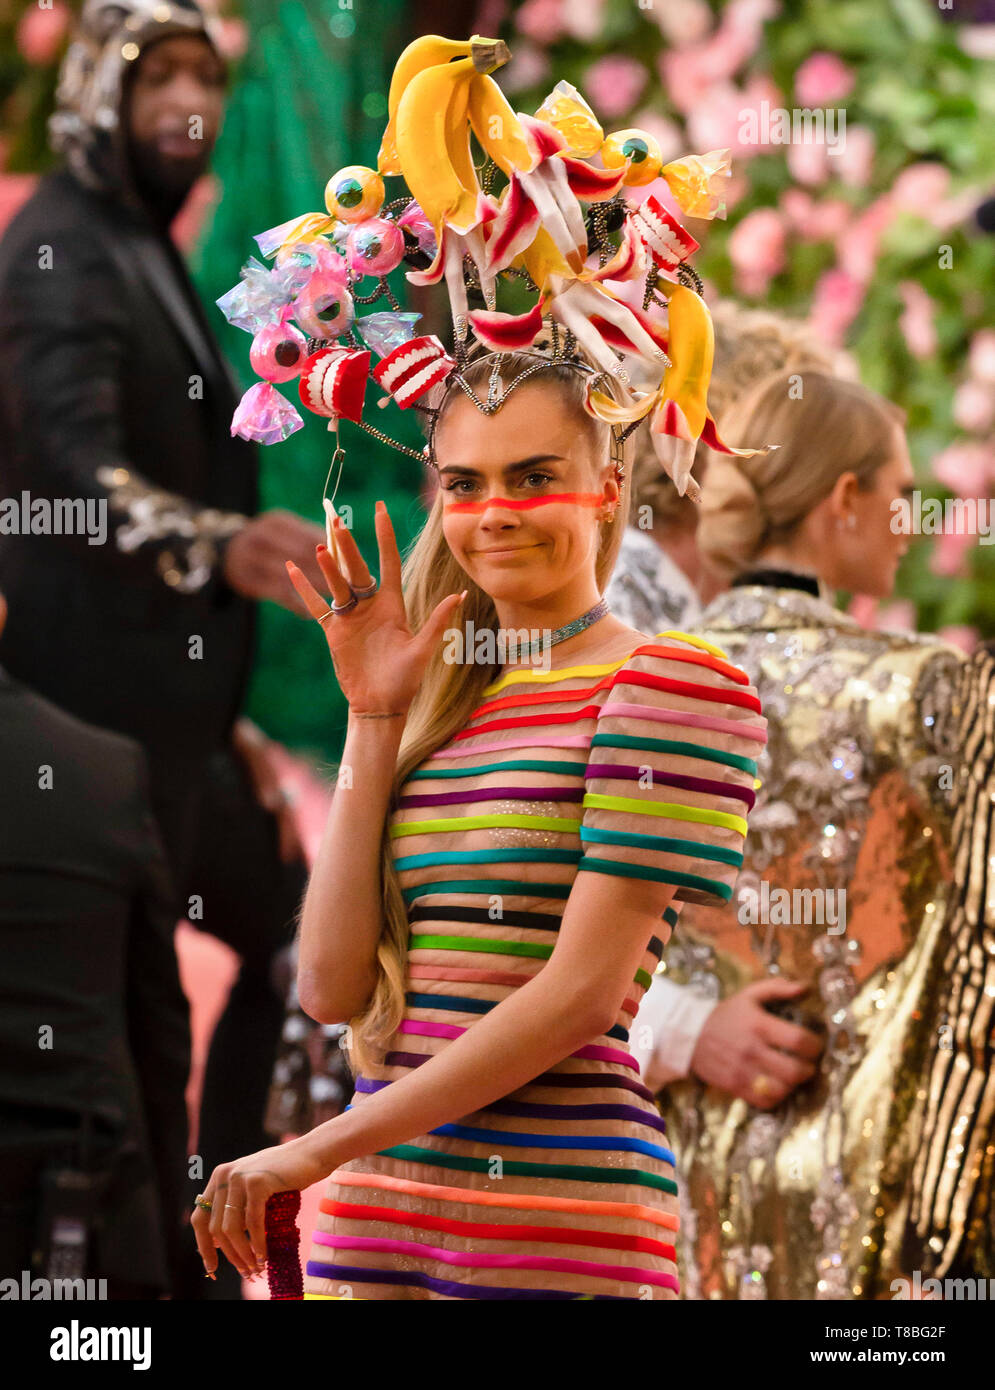 New York Ny May 06 2019 Cara Delevingne Arrives For The 2019